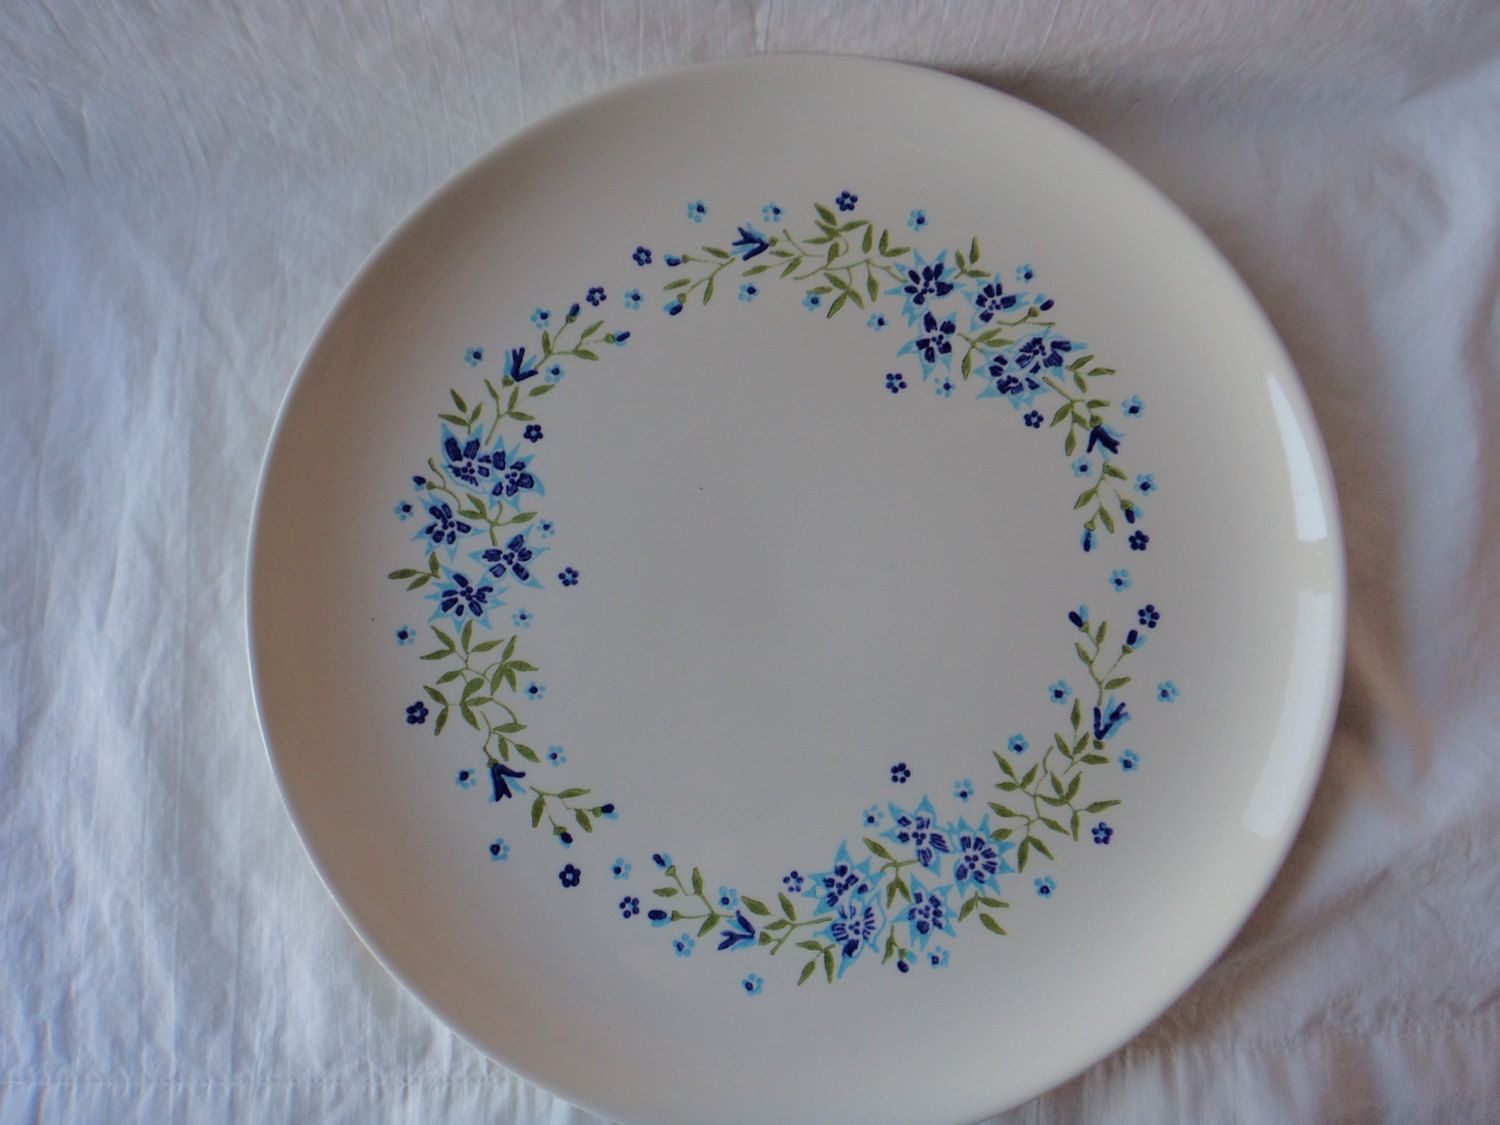 Stetson Creation Dinner Plate STT229 White Blue Flowers Ovenproof Hand Decorated USA by GrandmothersTable on Etsy & Stetson Creation Dinner Plate STT229 White Blue Flowers Ovenproof ...